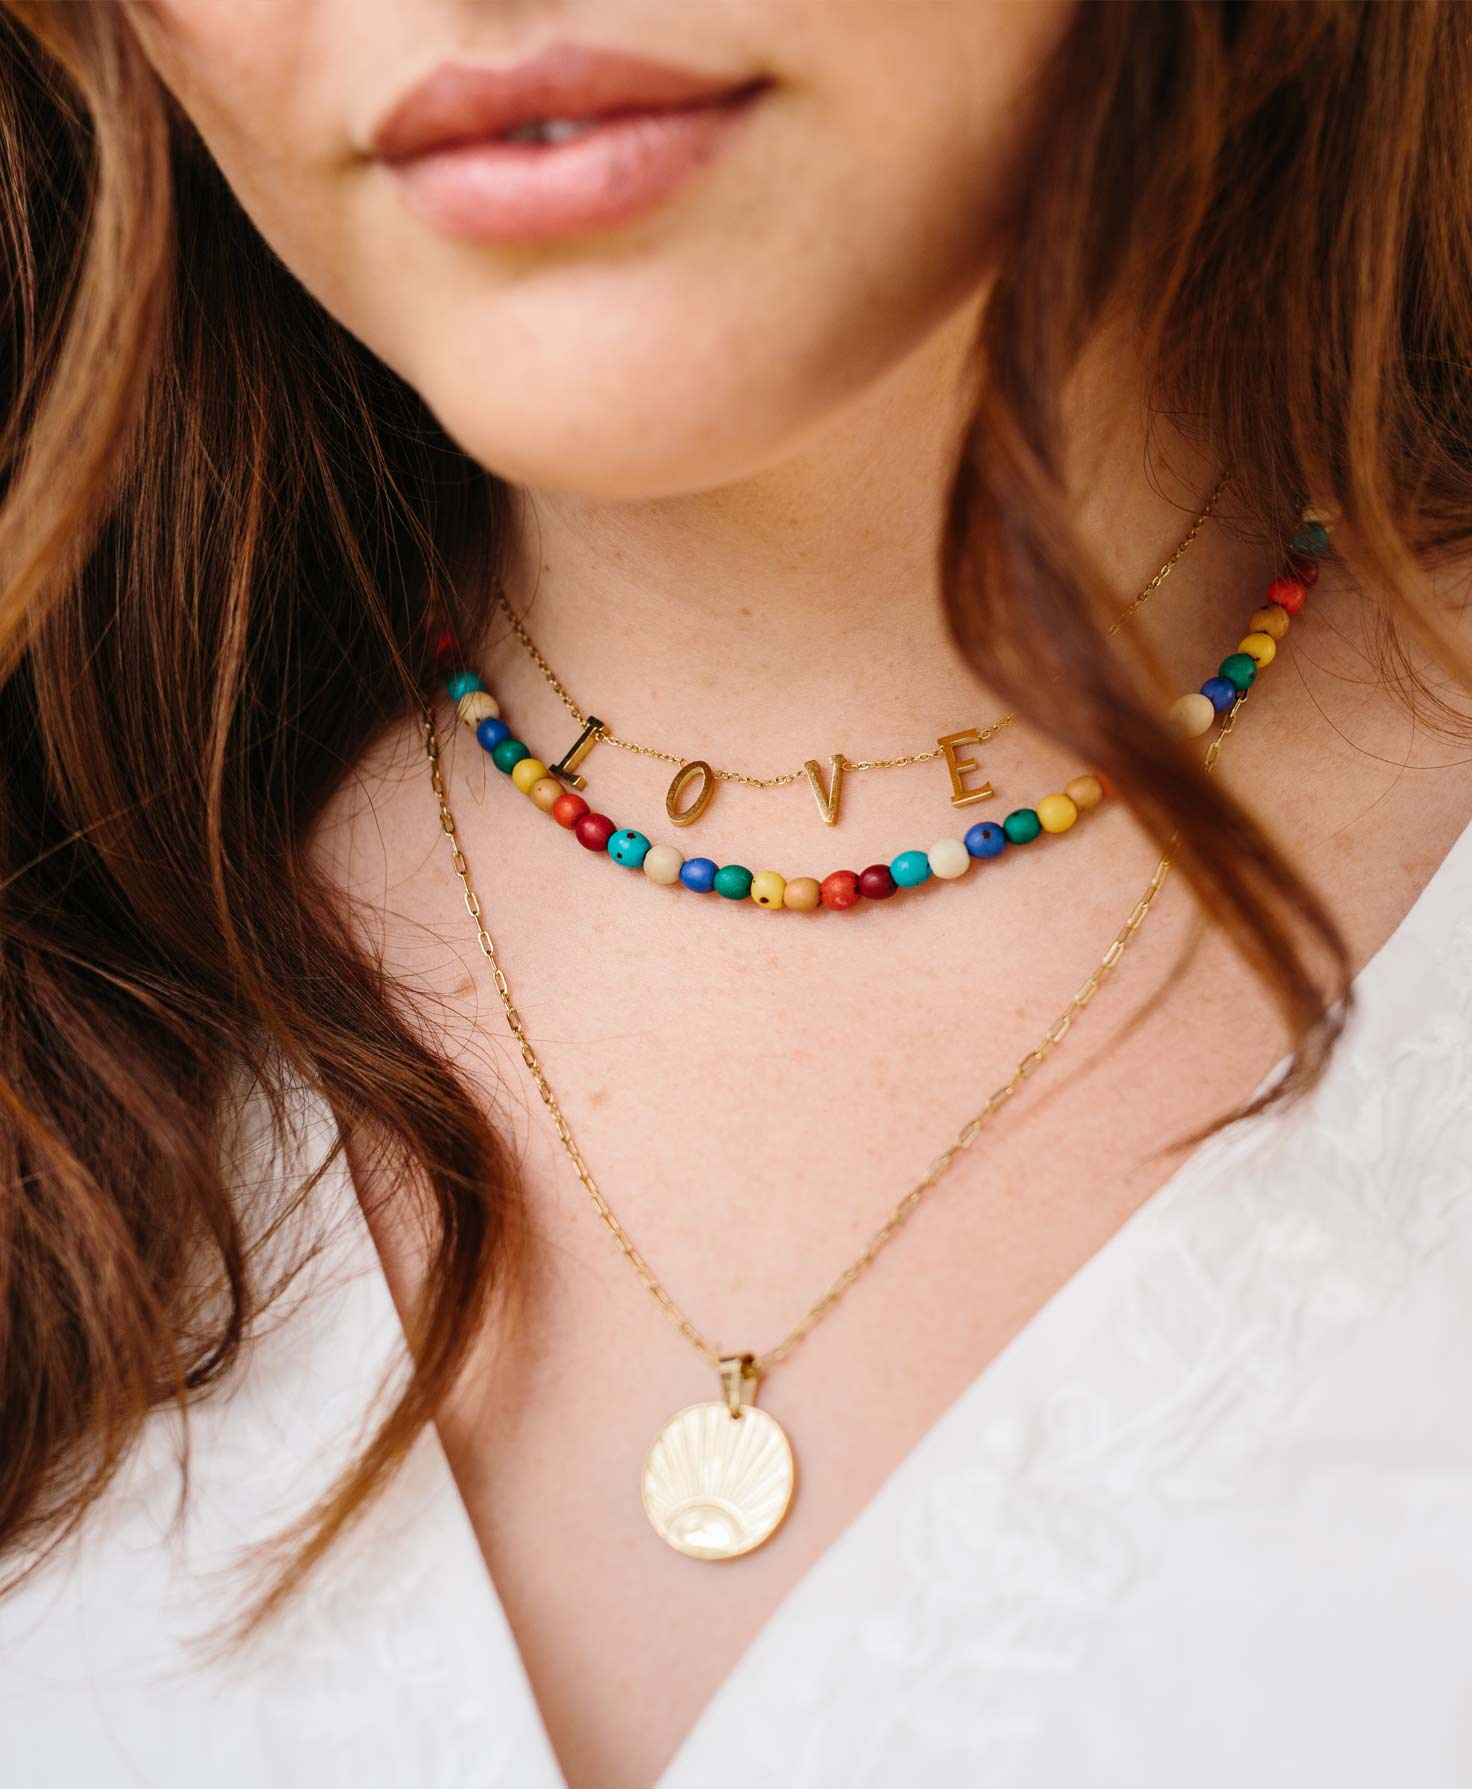 A model wears the Beloved Necklace layered with two other necklaces. The Achira Multicolor Necklace is slightly longer, and the Sunrise Necklace hangs down several inches below that for a complex look.